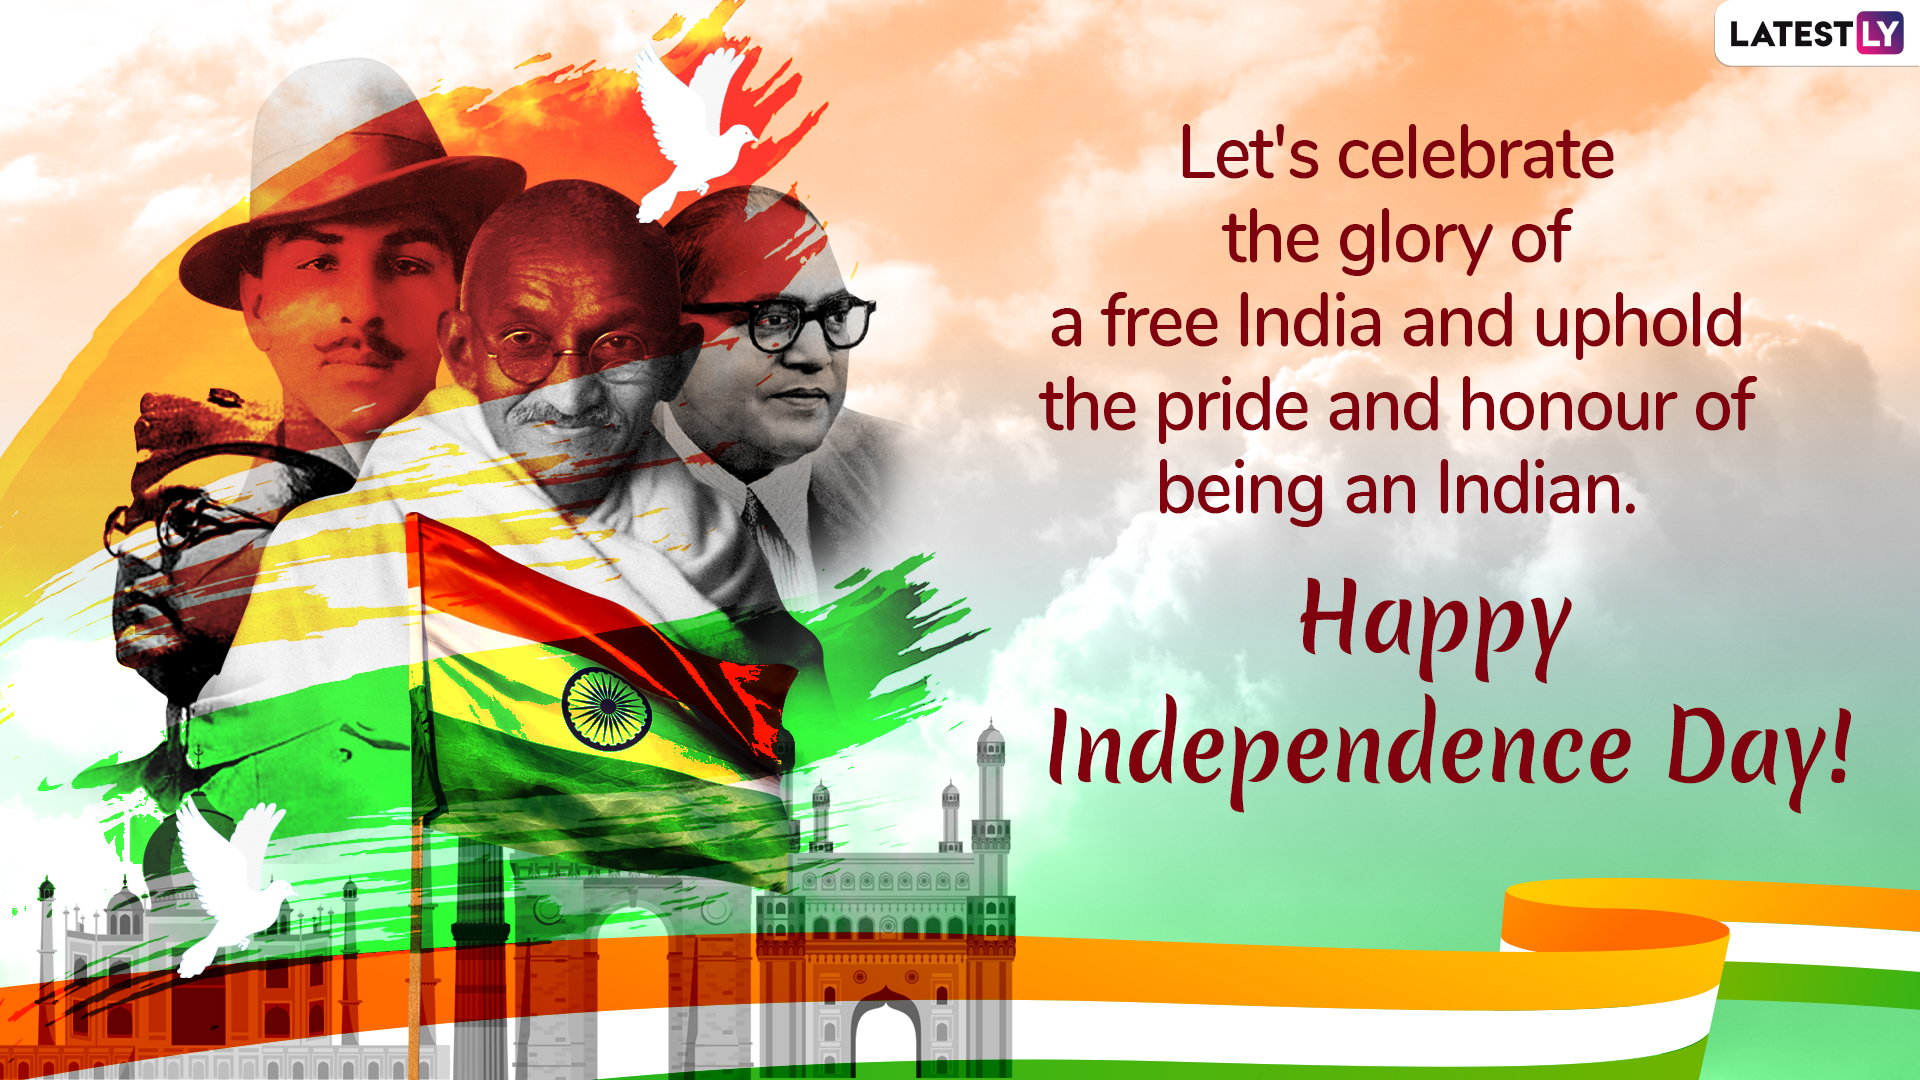 Independence Day 2019 WhatsApp Sticker 5 (Photo Credits: File Image)